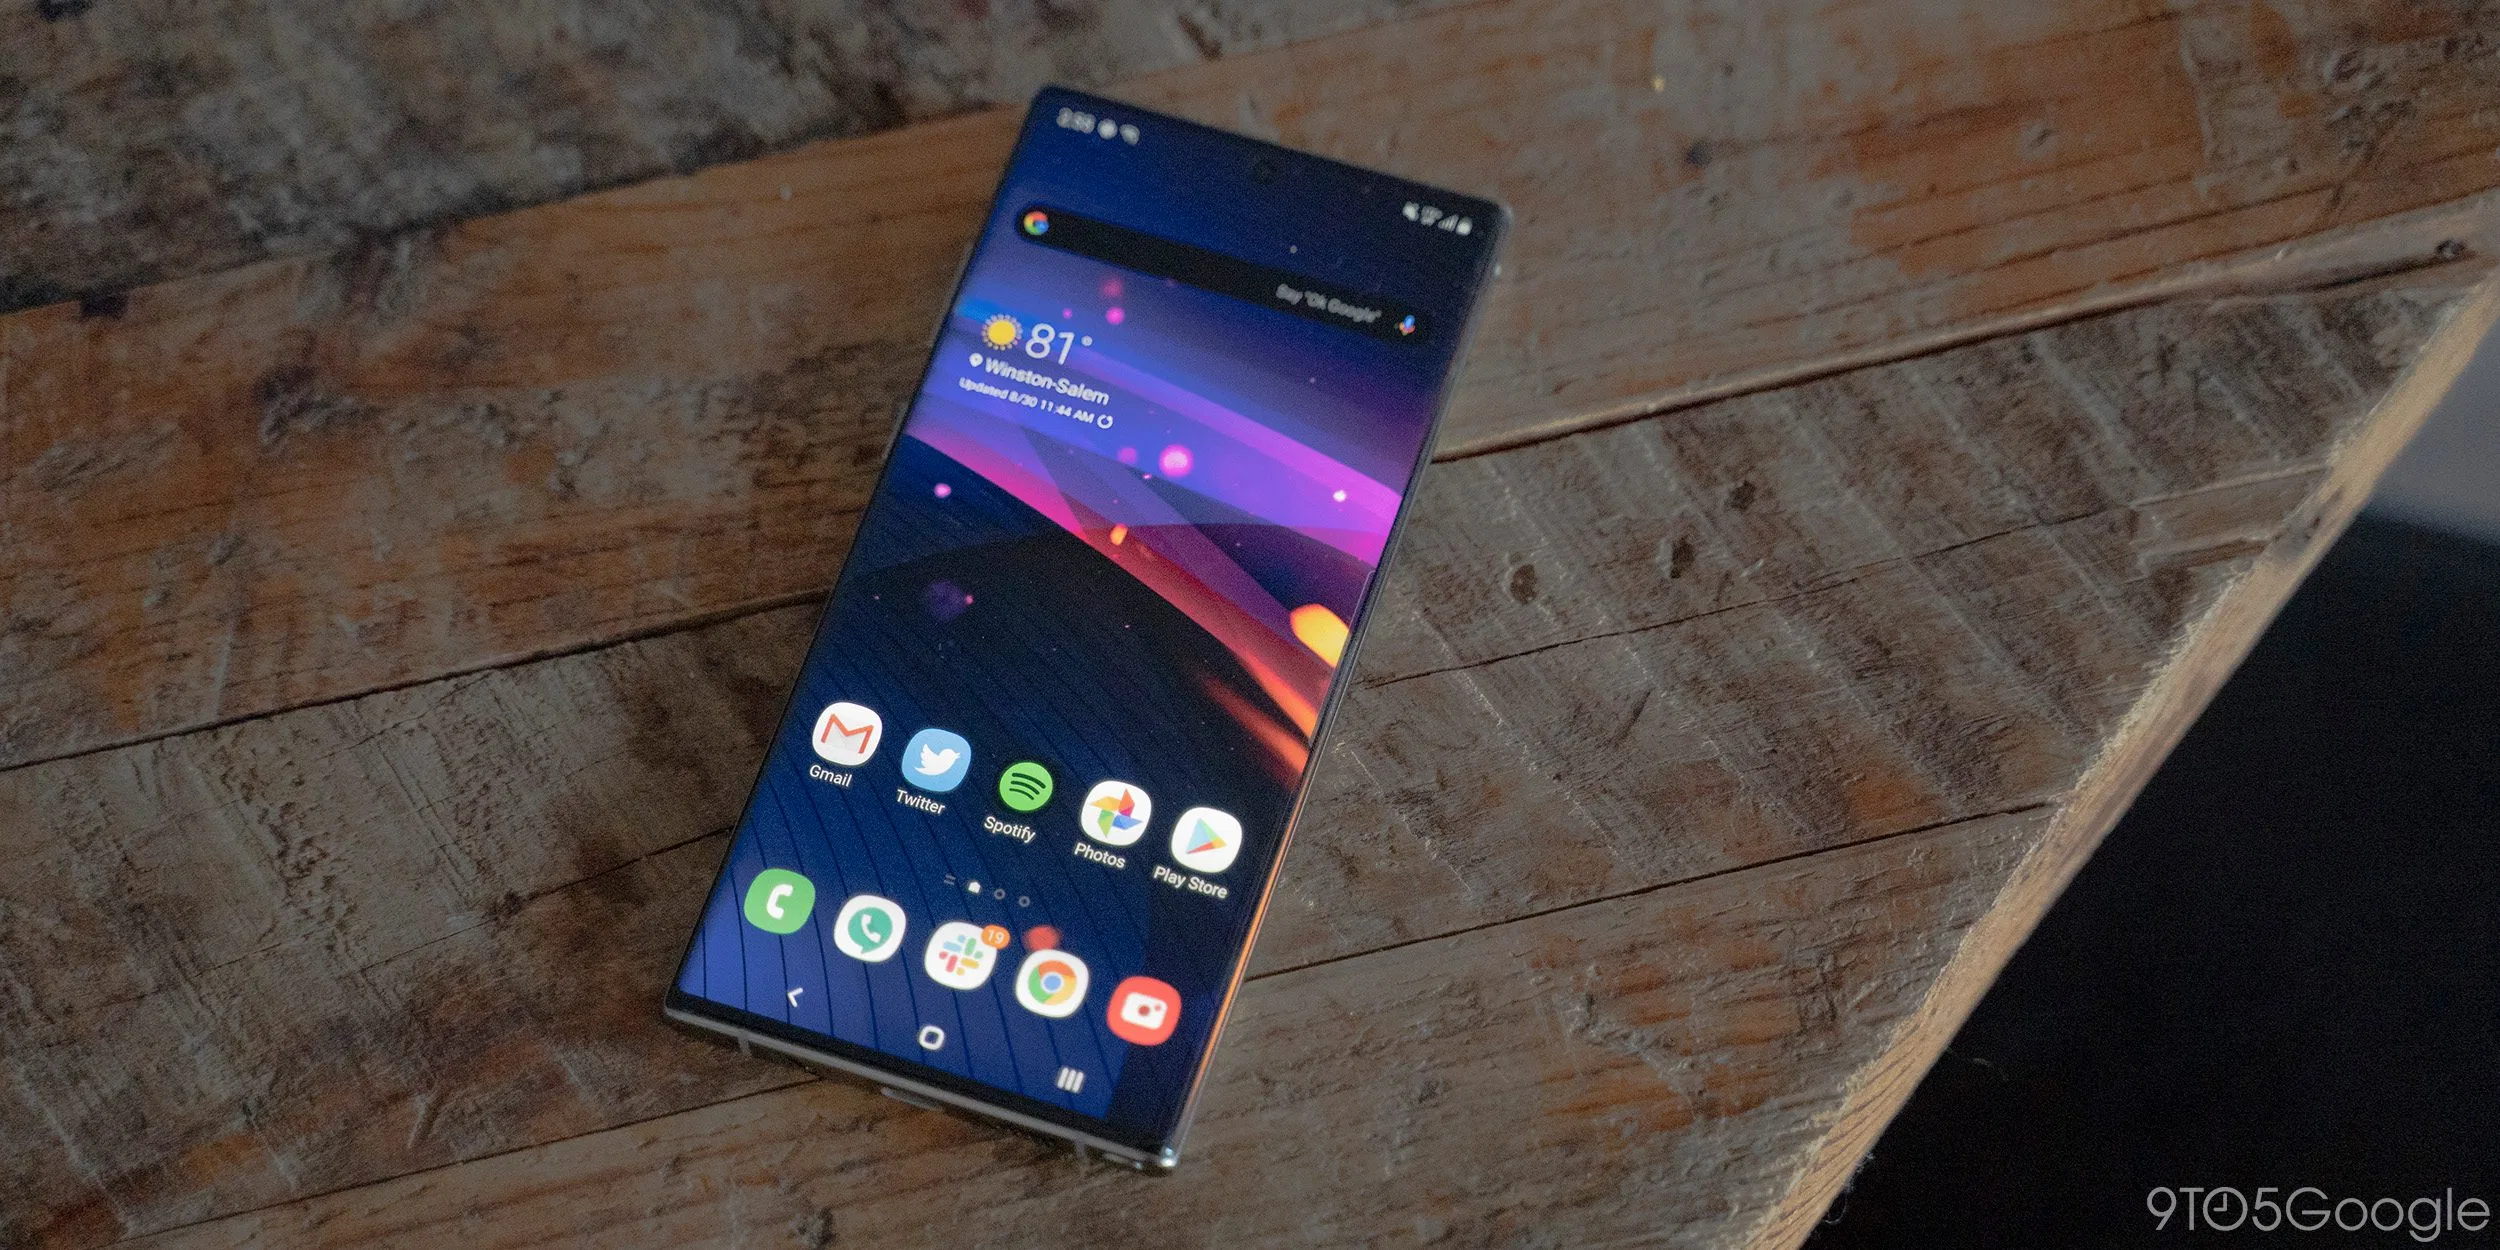 How To Backup Android Phone With Broken Screen In 2020